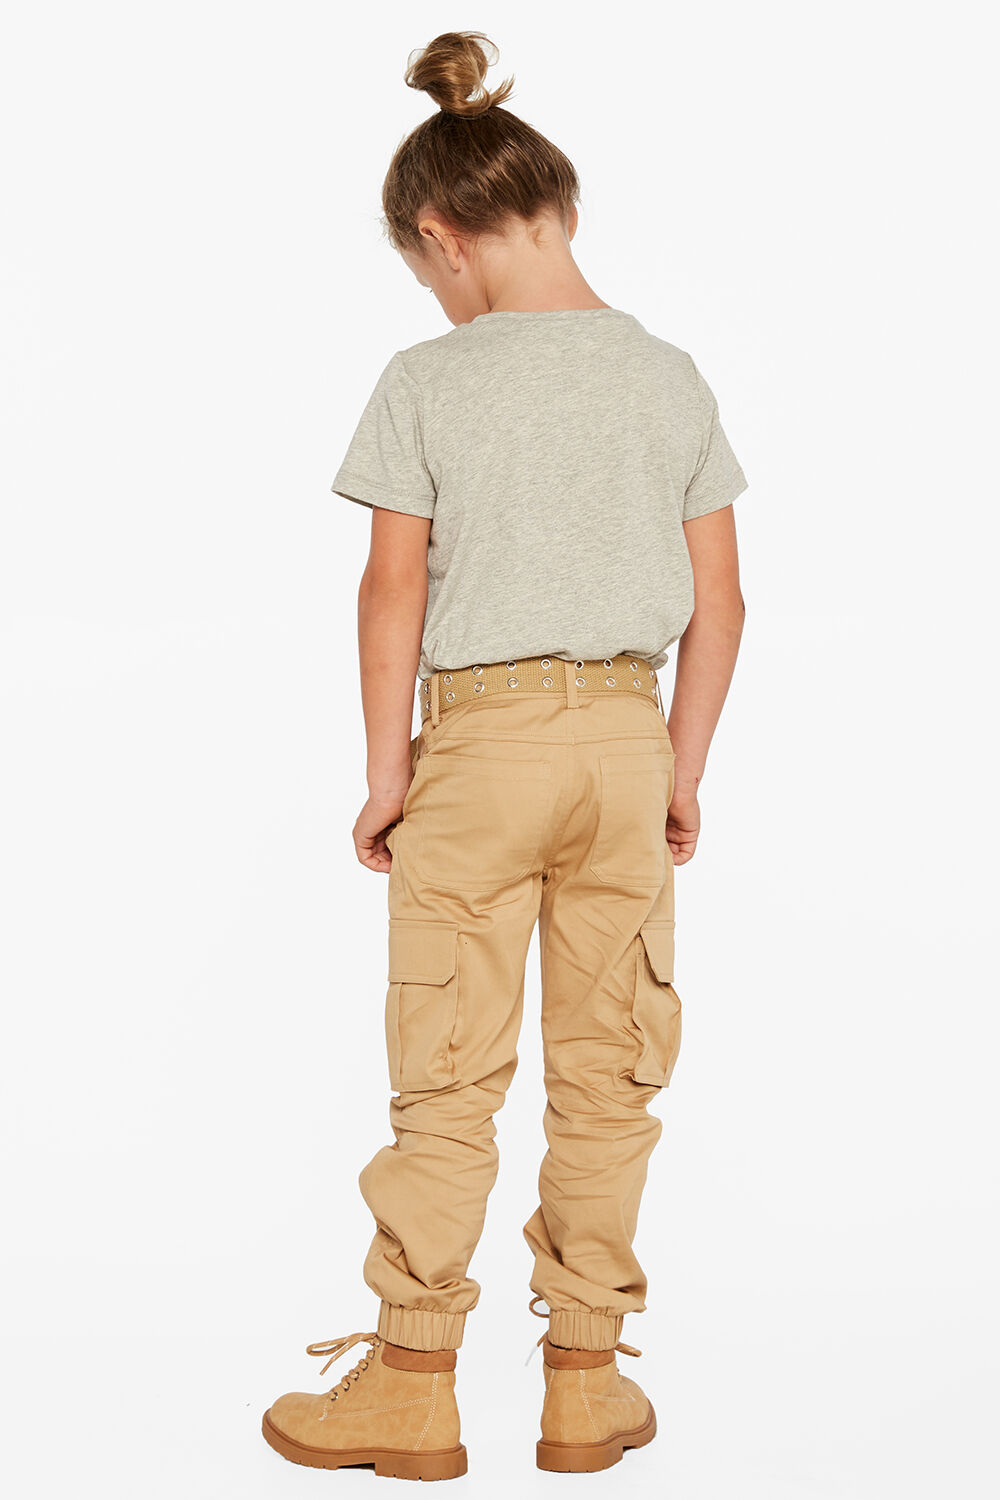 HUNTER CARGO PANT in colour WHITECAP GRAY